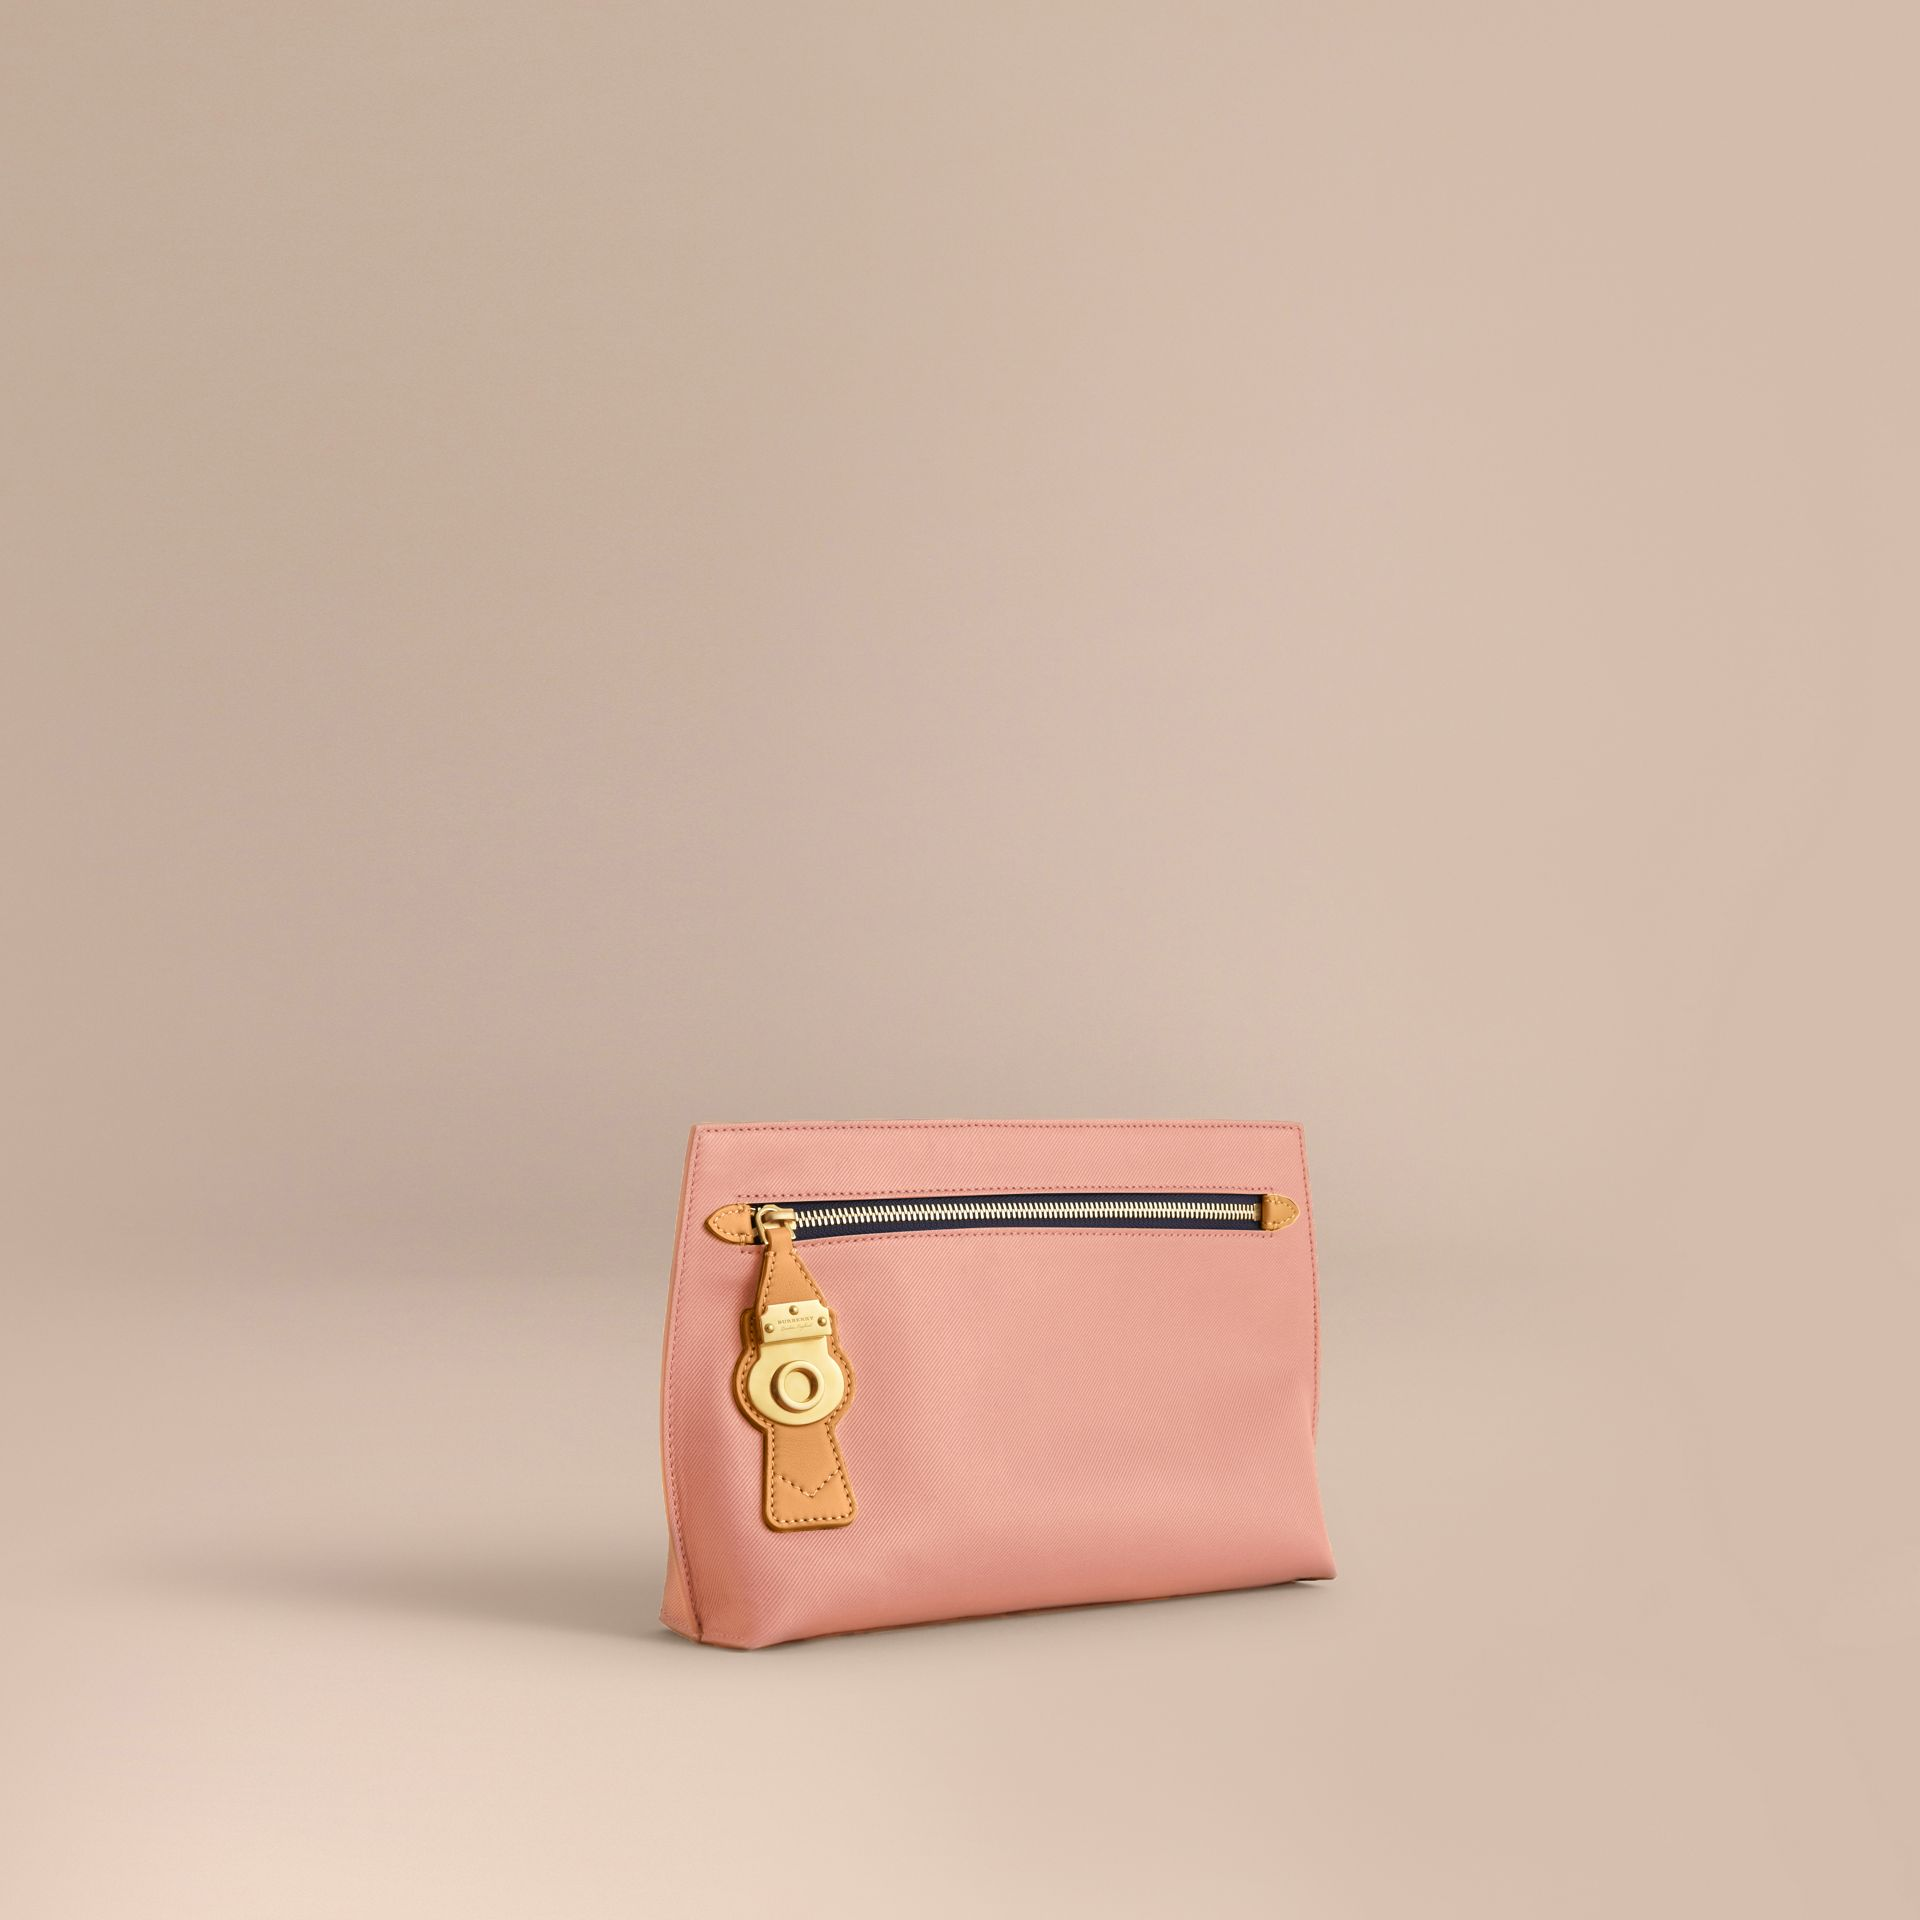 Two-tone Trench Leather Wristlet Pouch Ash Rose/pale Clementine - gallery image 1